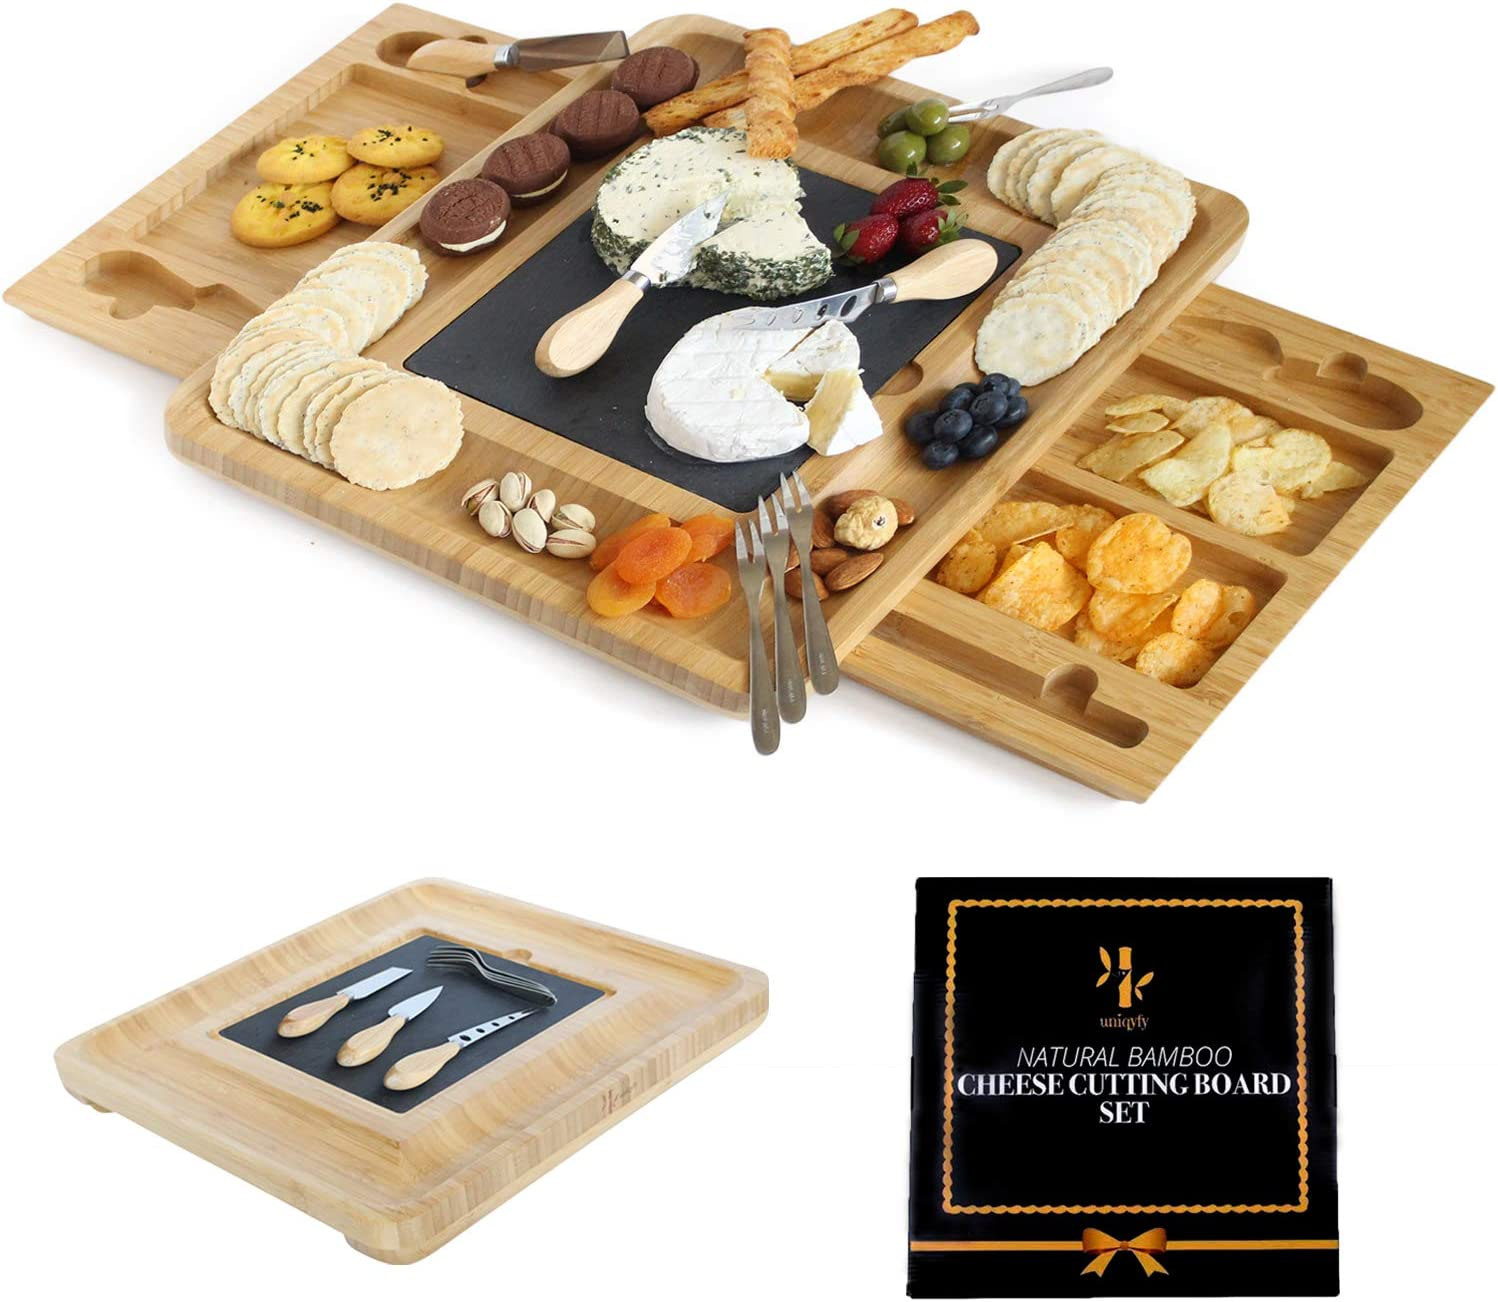 Bamboo cheese cutting board and knife set, cheese board (Top Quality wood) Unique Charcuterie board and Serving Tray for Cheese, Crackers, Wine and appetizer Best gift for Mom, Hostess birthday friend